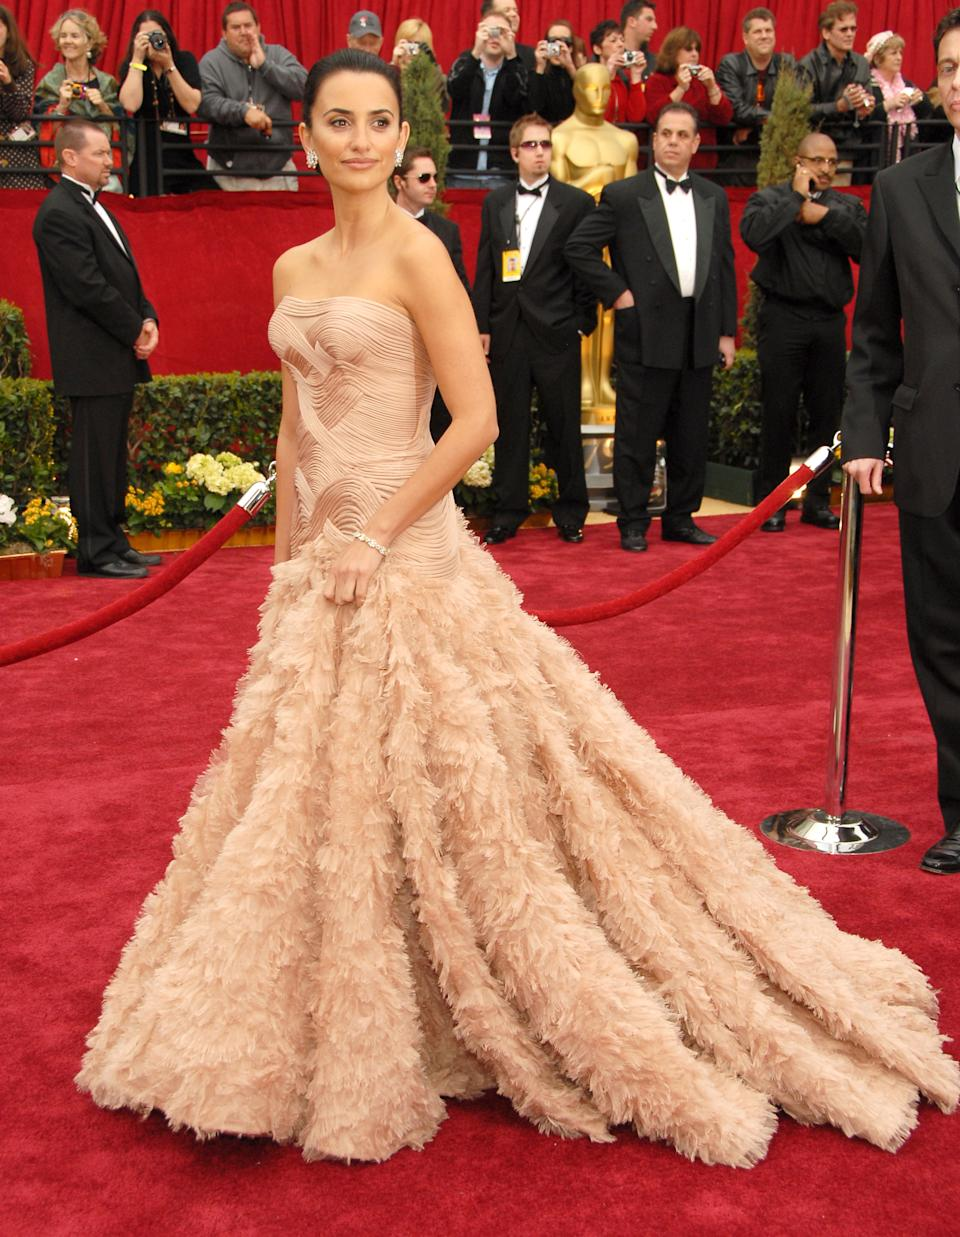 <p>Cruz's blush Versace gown featured a drop waist and an elaborate feathered skirt that turned heads and sent photographers into a frenzy. Although she didn't take home the Best Actress award that year, this look was by-far the red carpet winner of the night.</p>